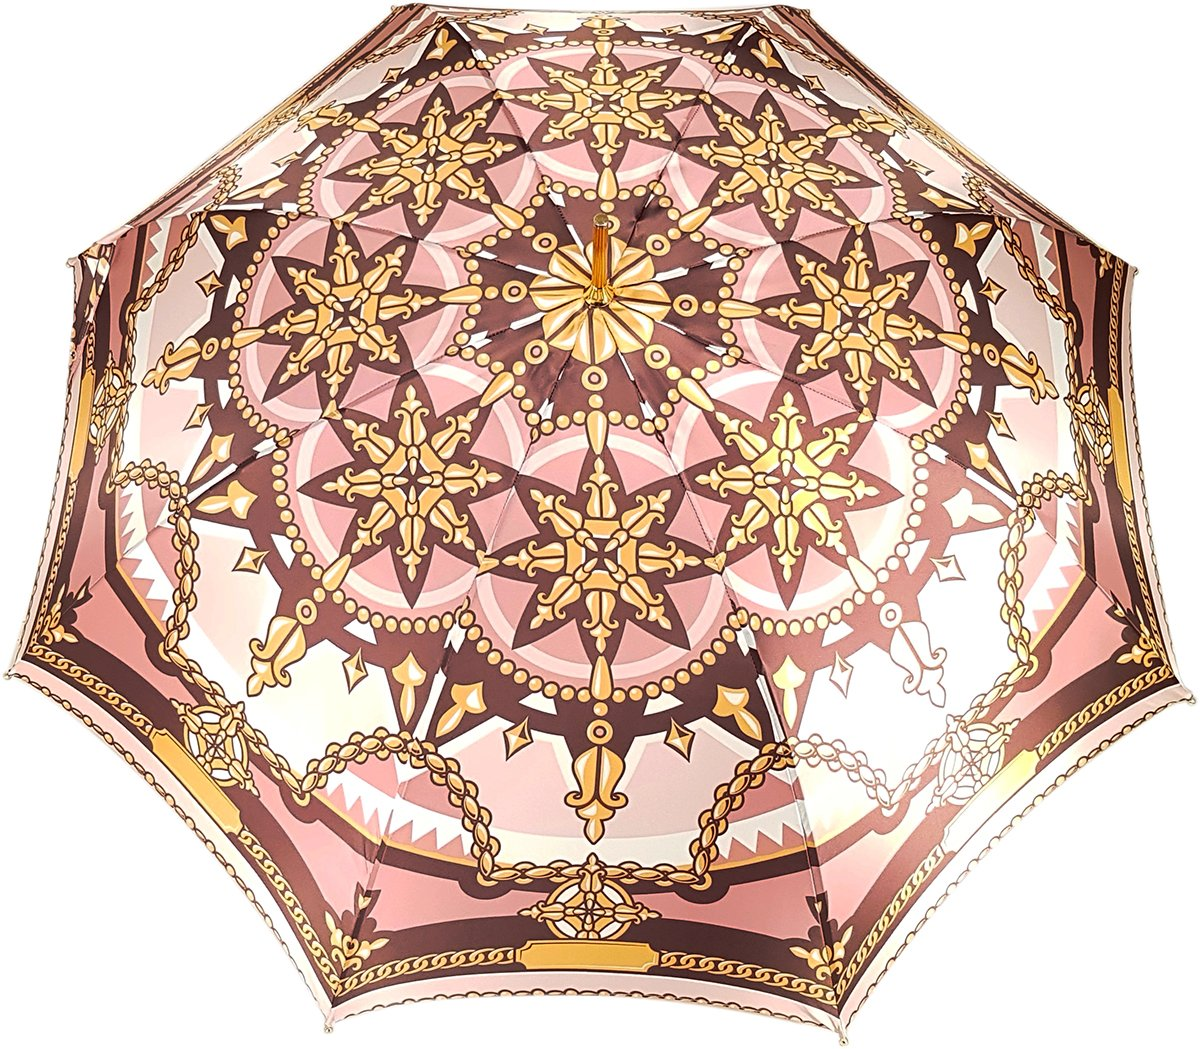 Charming Woman's Umbrella Exclusive Design by il Marchesato